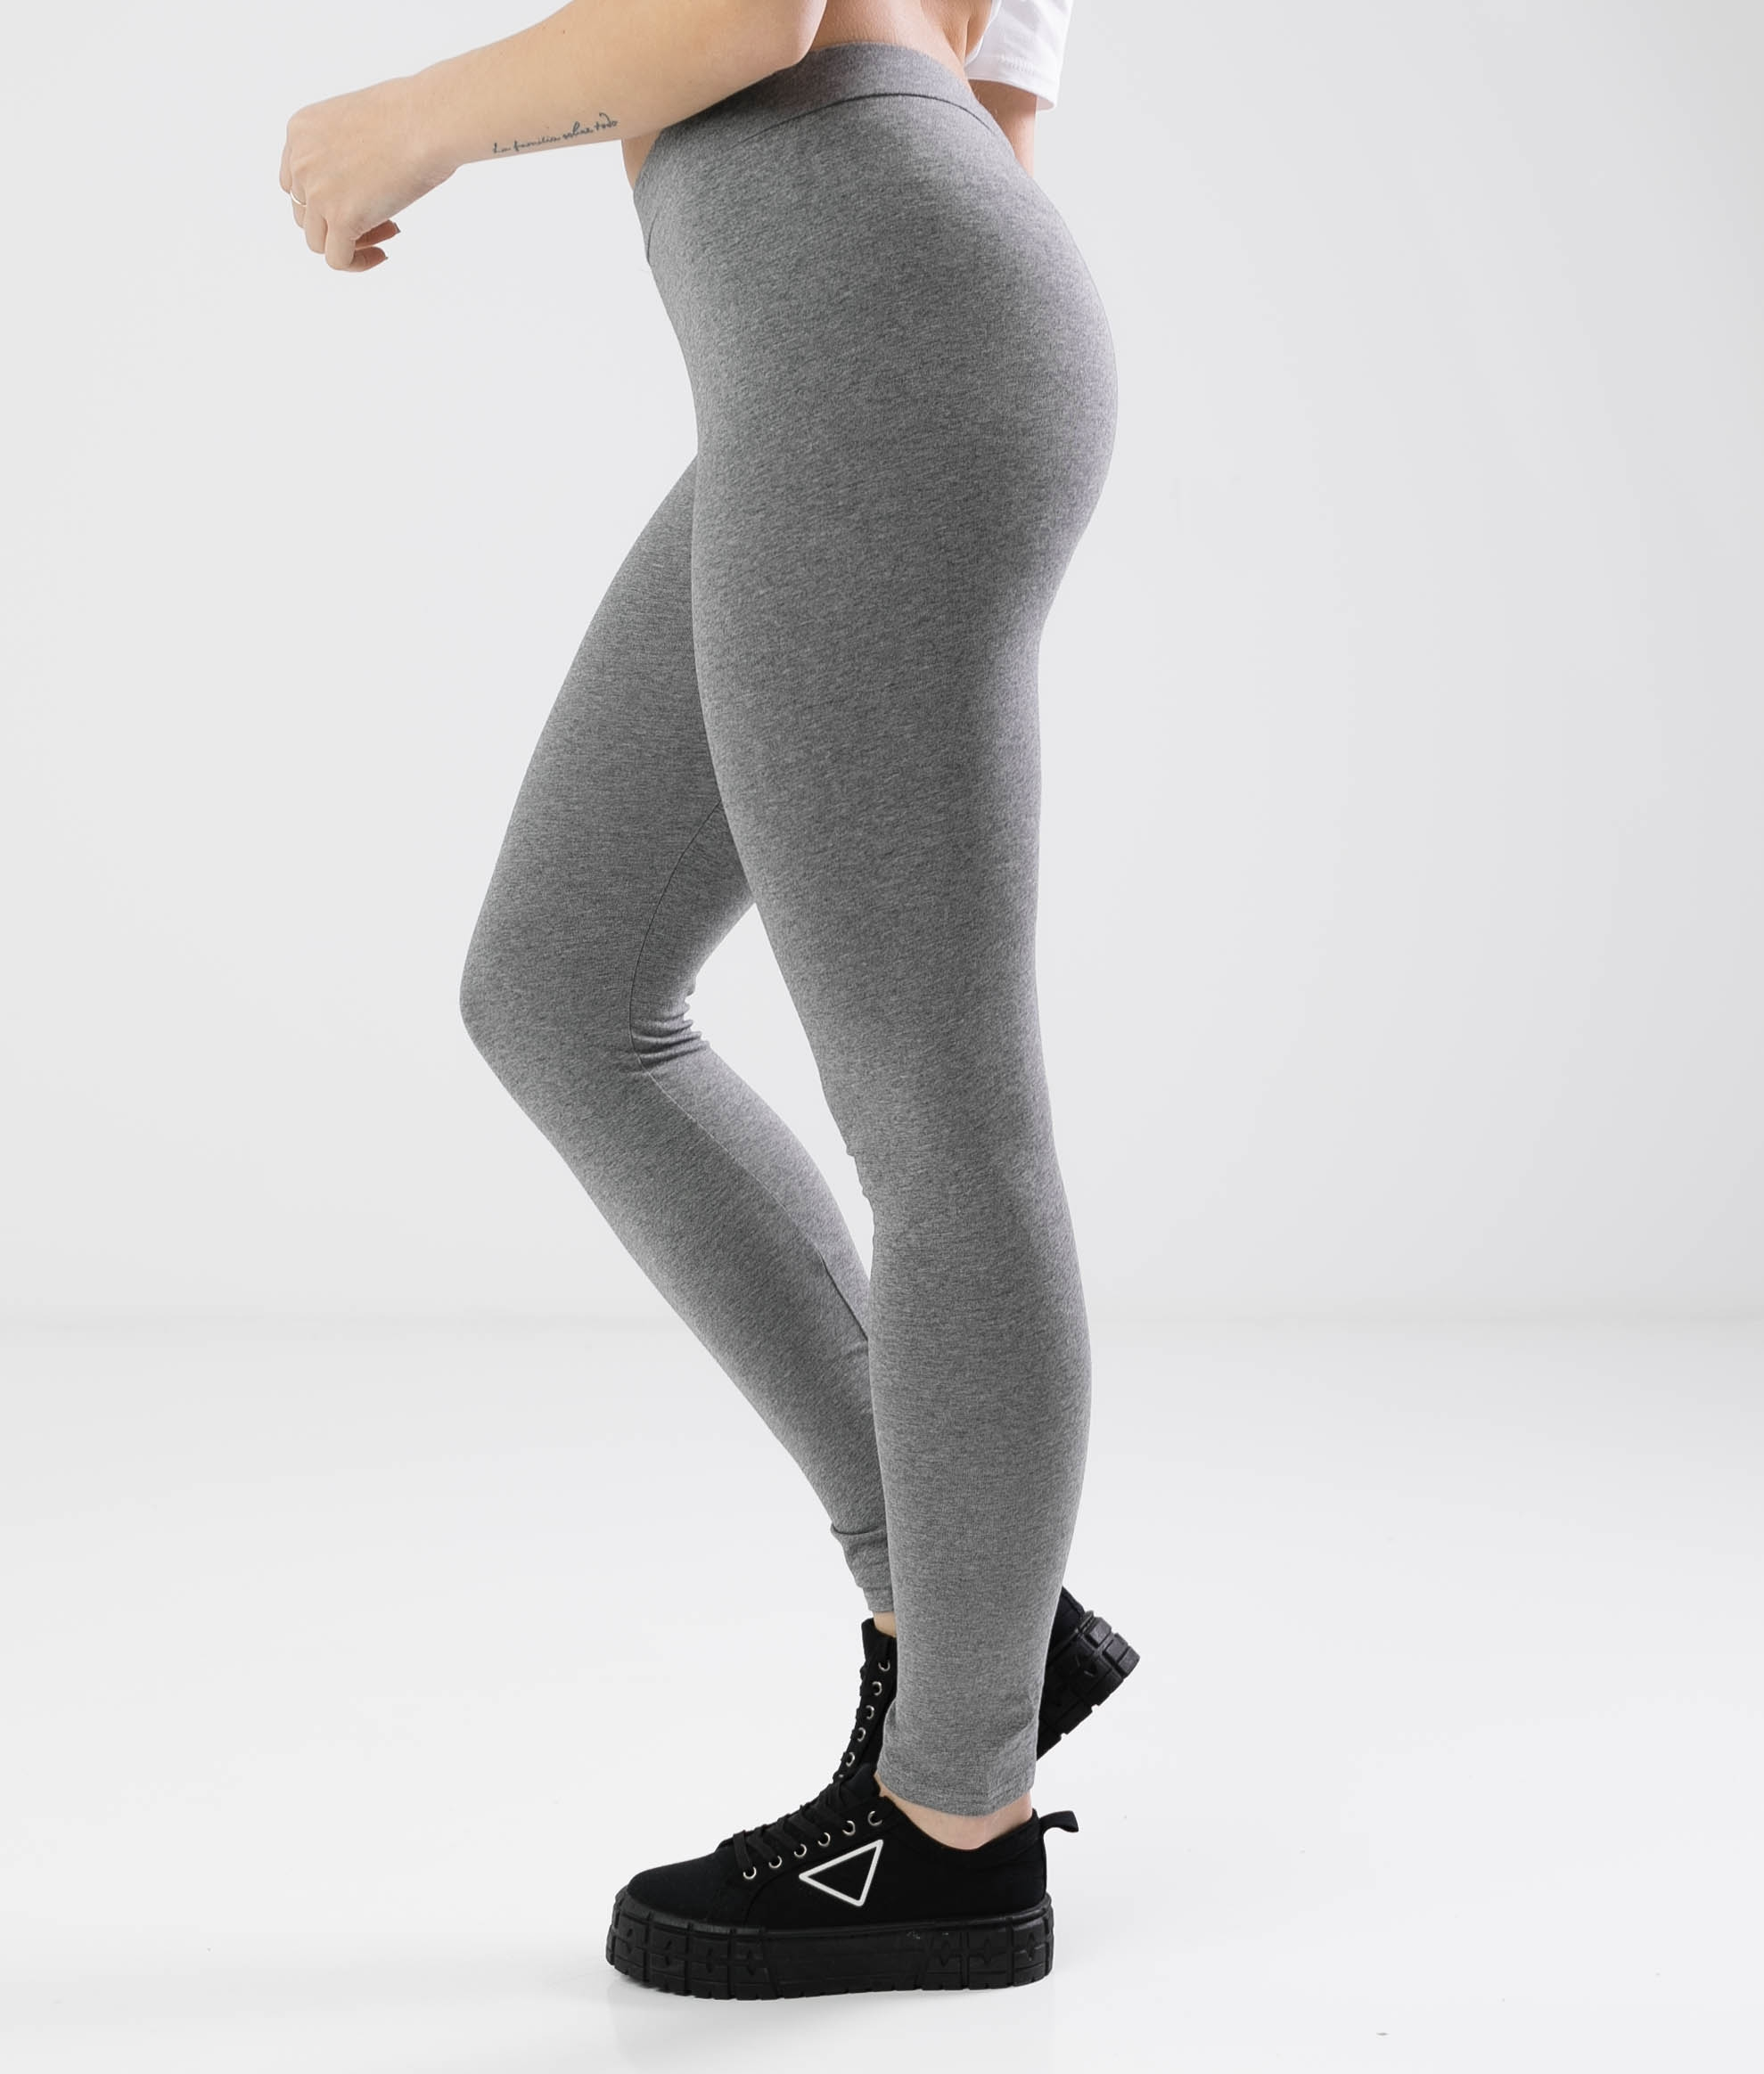 LEGGINS ZIMER - GREY DARK